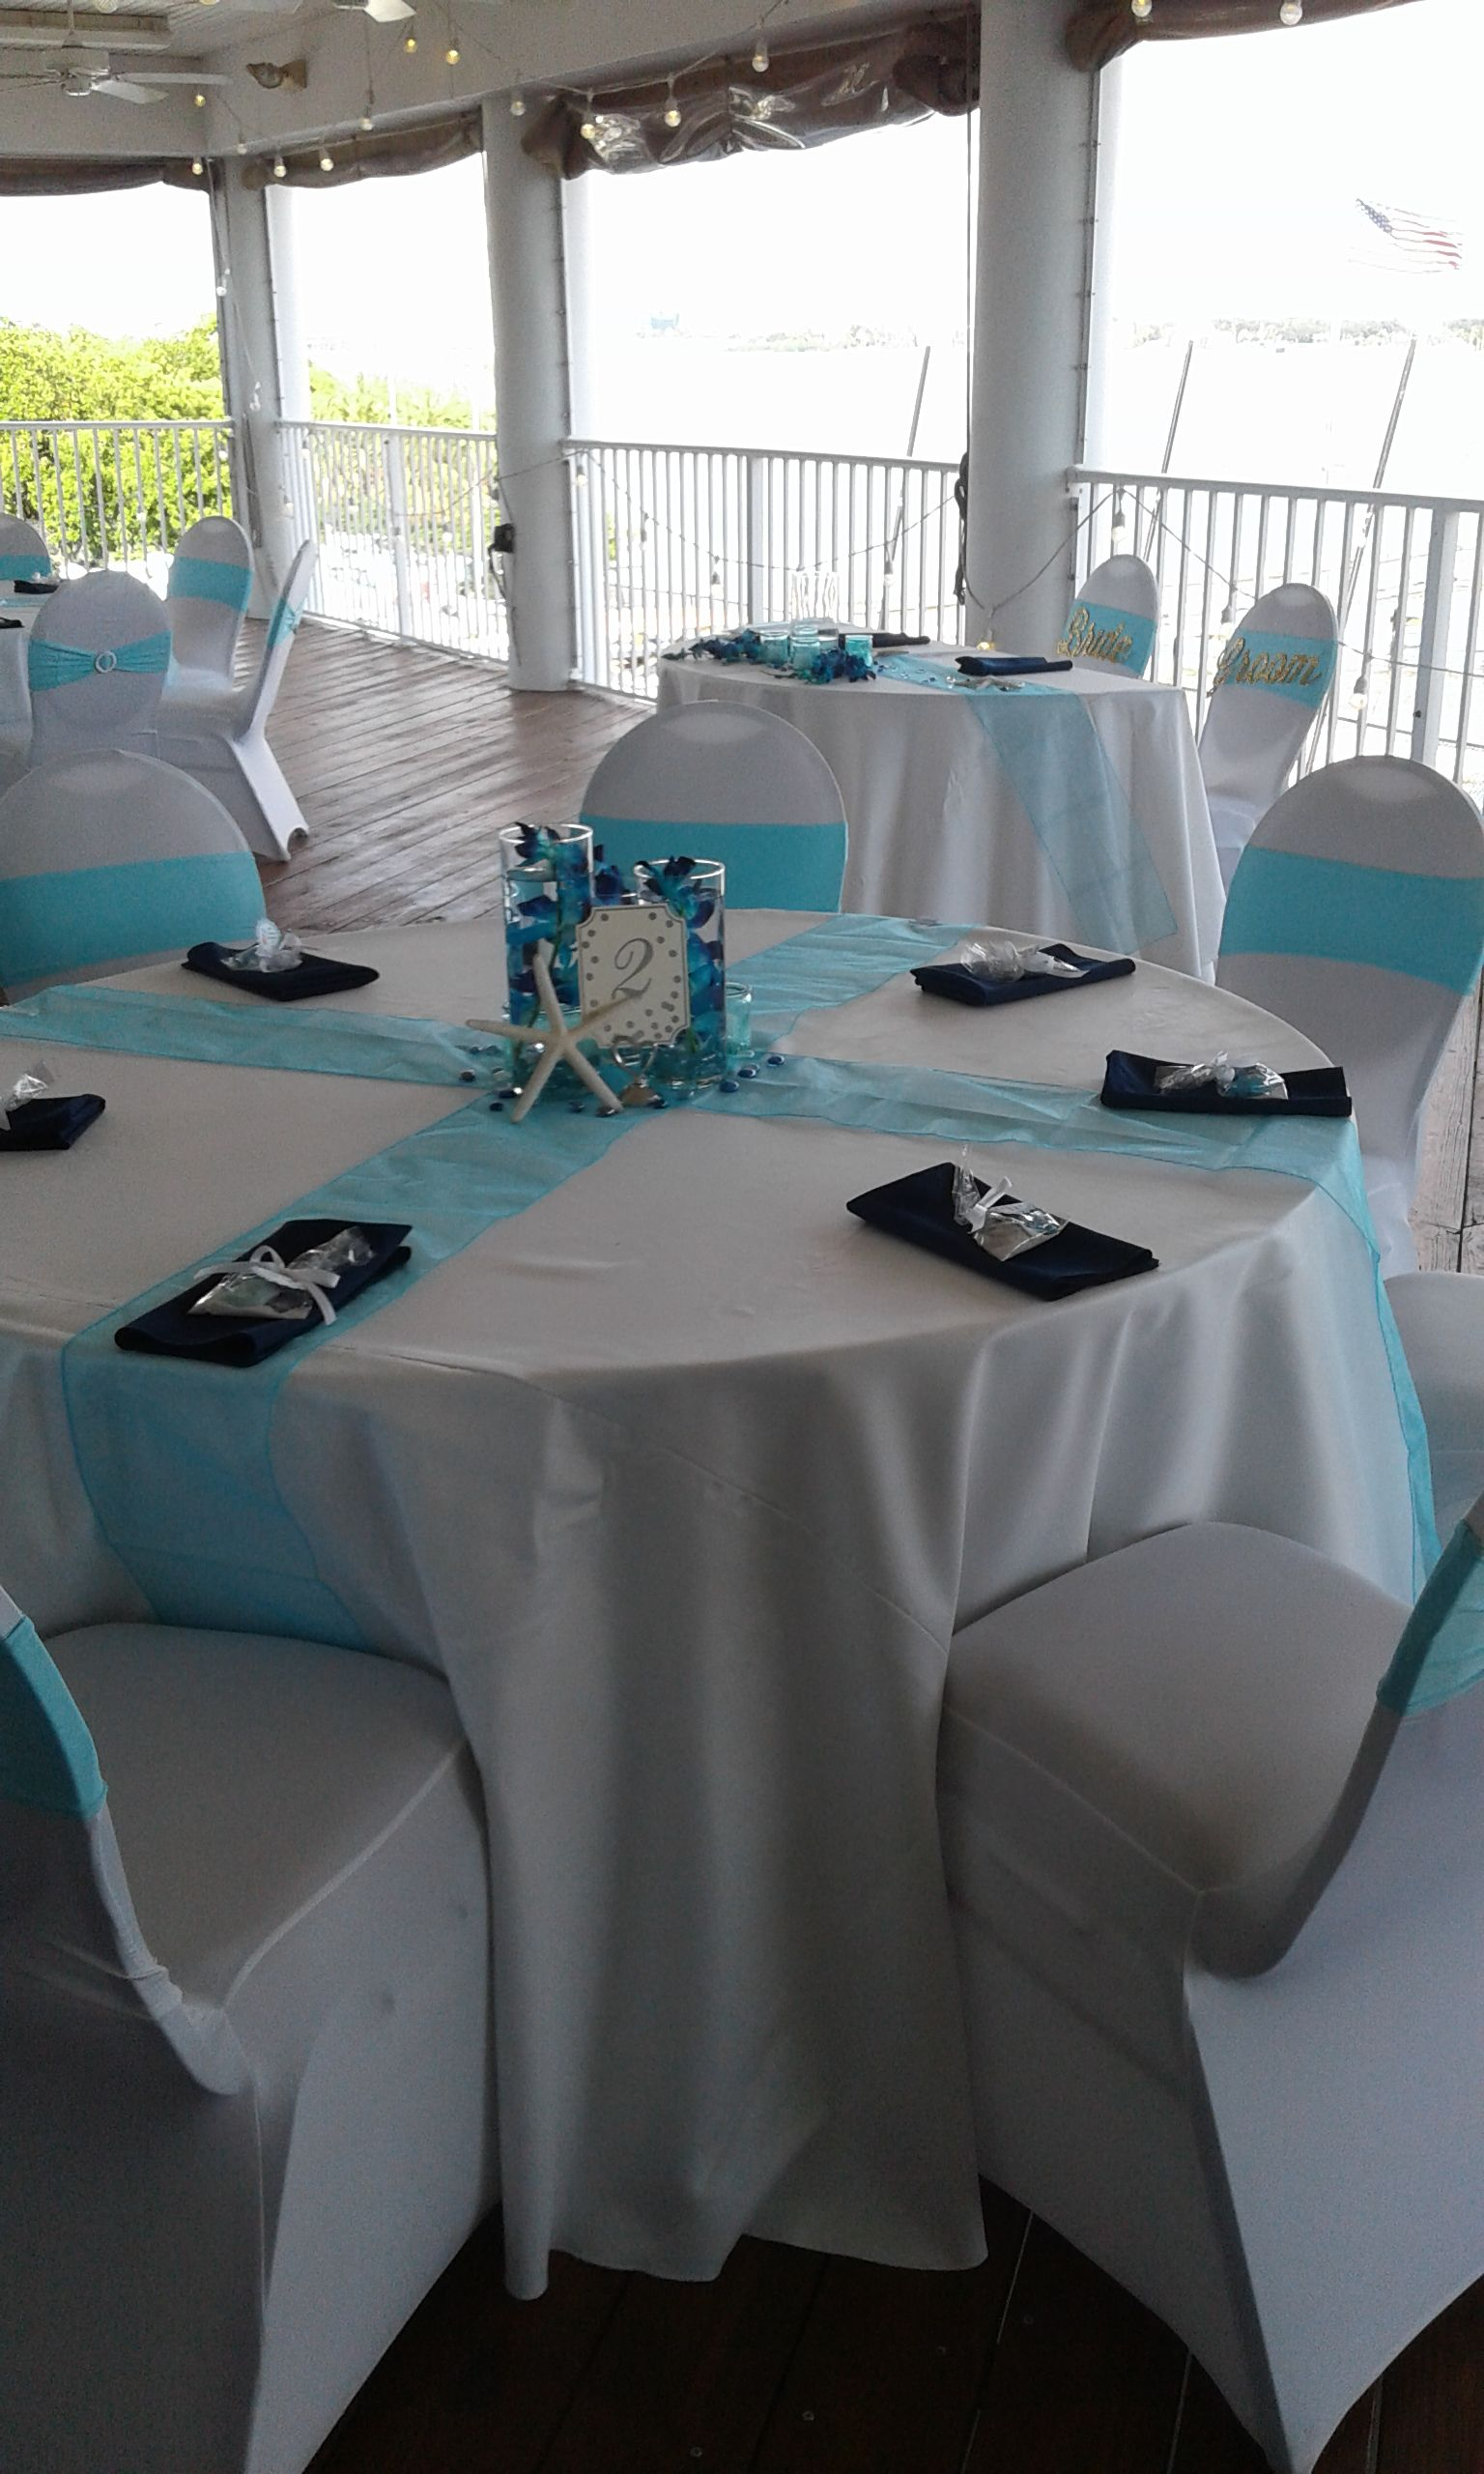 Aqua Table Runners And Chair Sashes, With White Spandex Chair Covers, Navy  Napkins.